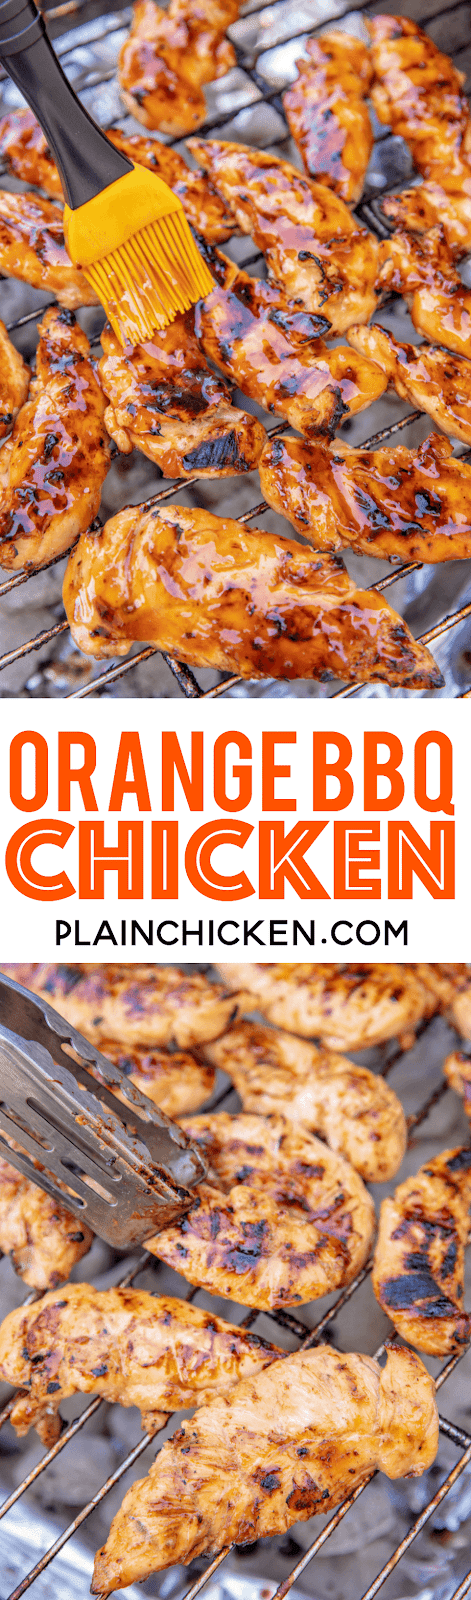 Orange BBQ Chicken - only 4 ingredients! SO good!!! We actually made it twice in one week. Orange juice, brown sugar, BBQ sauce and chicken. Such an easy weeknight meal. Leftovers are great in a wrap or on top of a salad! Great meal prep recipe!! #chicken #grill #grilling #grilledchicken #bbq